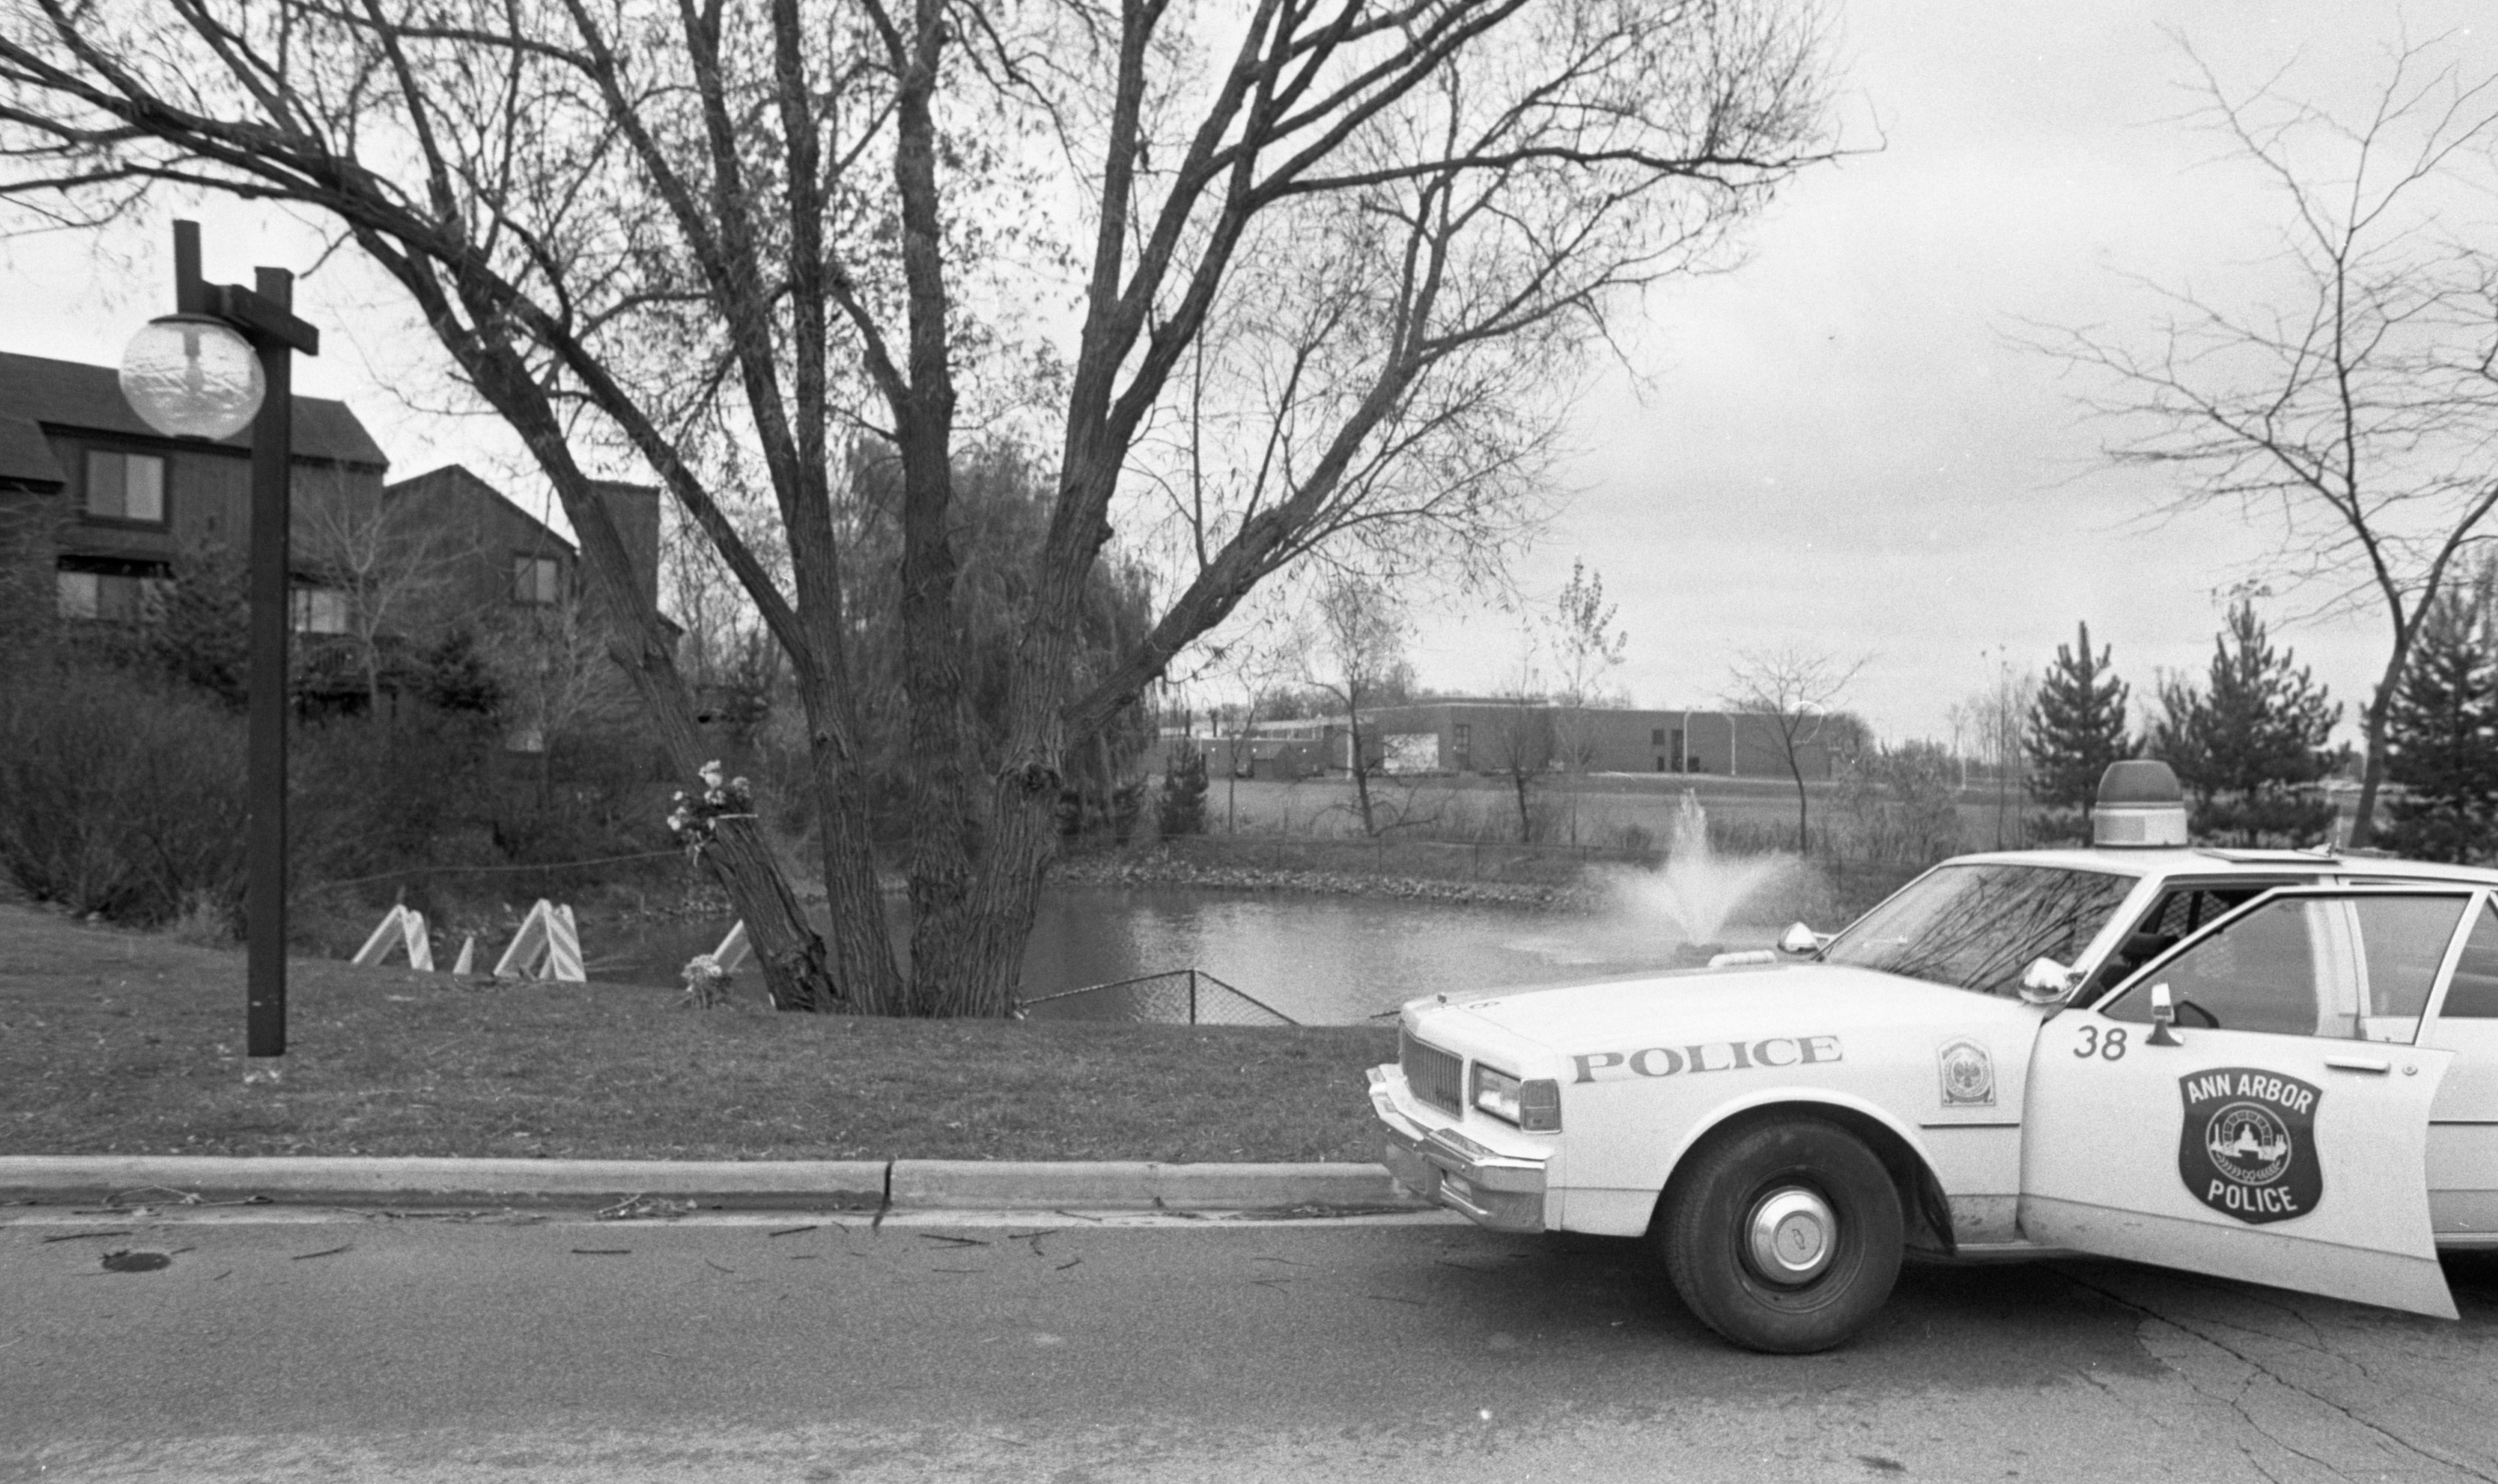 Accident Site at Northbury Condominiums Where Two Teens Drowned, November 1989 image